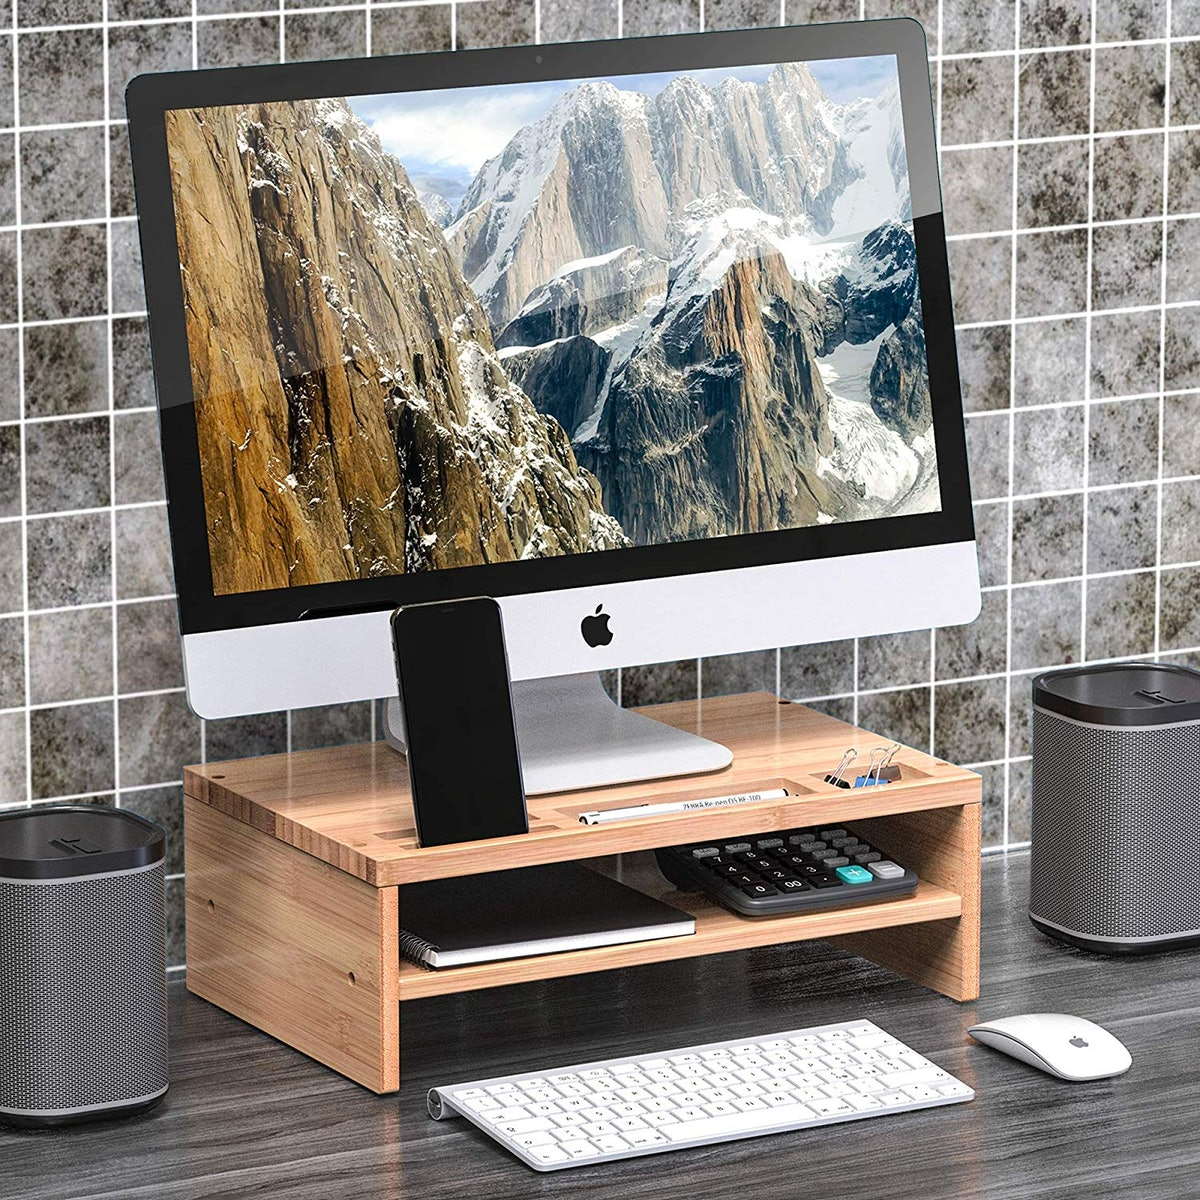 Well Weng Desk Monitor